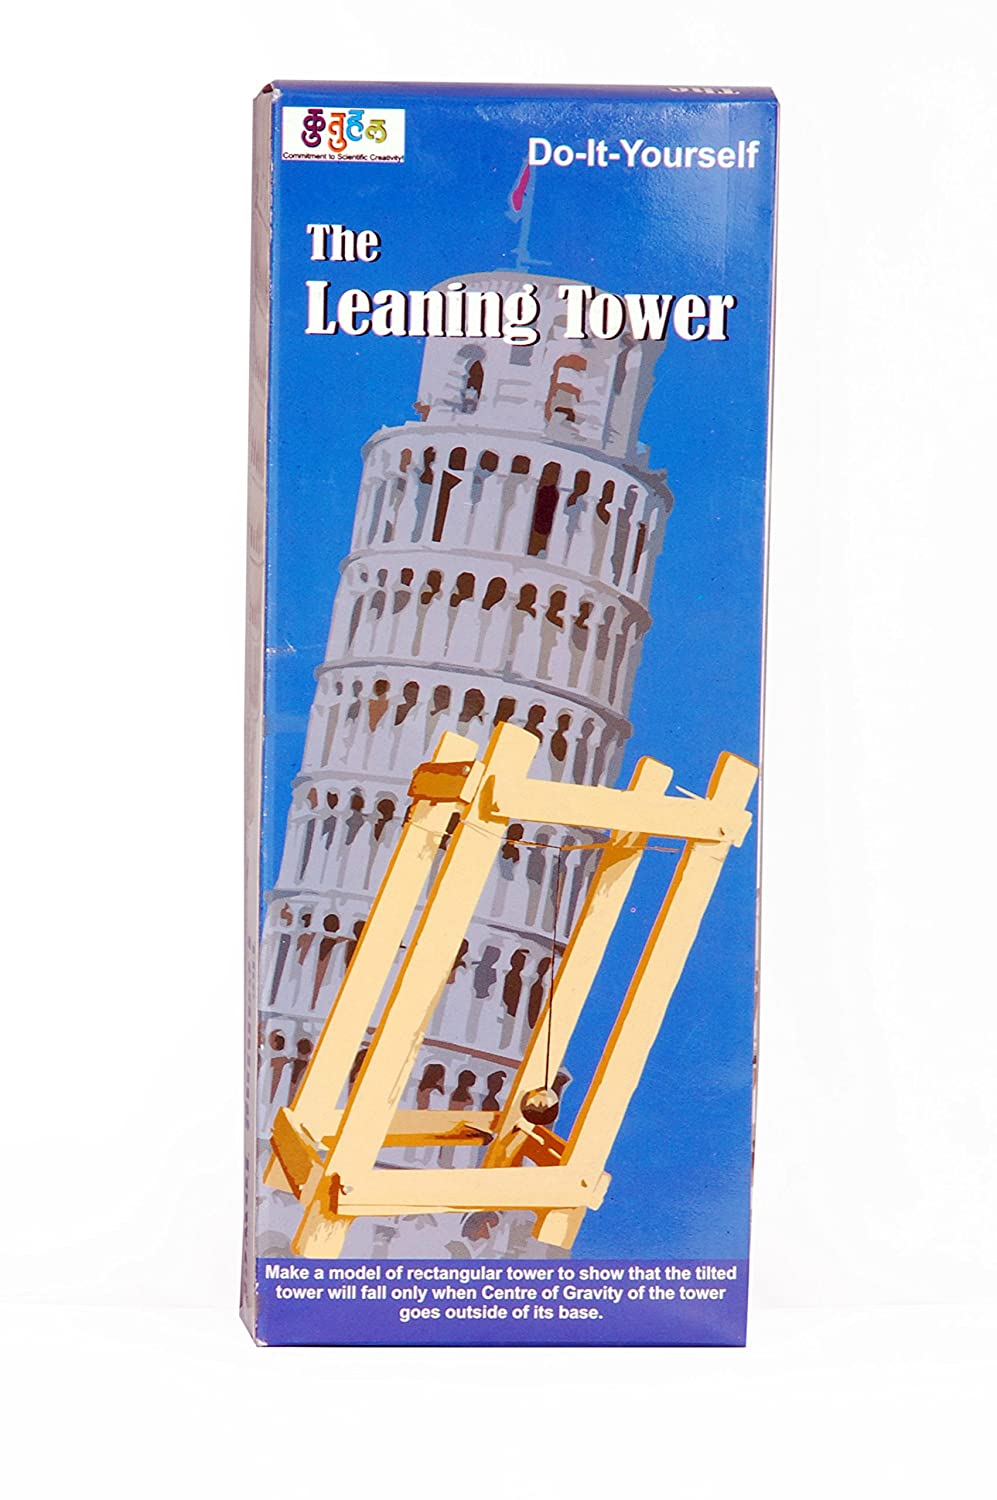 Buy safal leaning tower center of mass demonstration project do do it yourself working model educational learning toy physics science activity kit online at low prices in india amazon solutioingenieria Choice Image